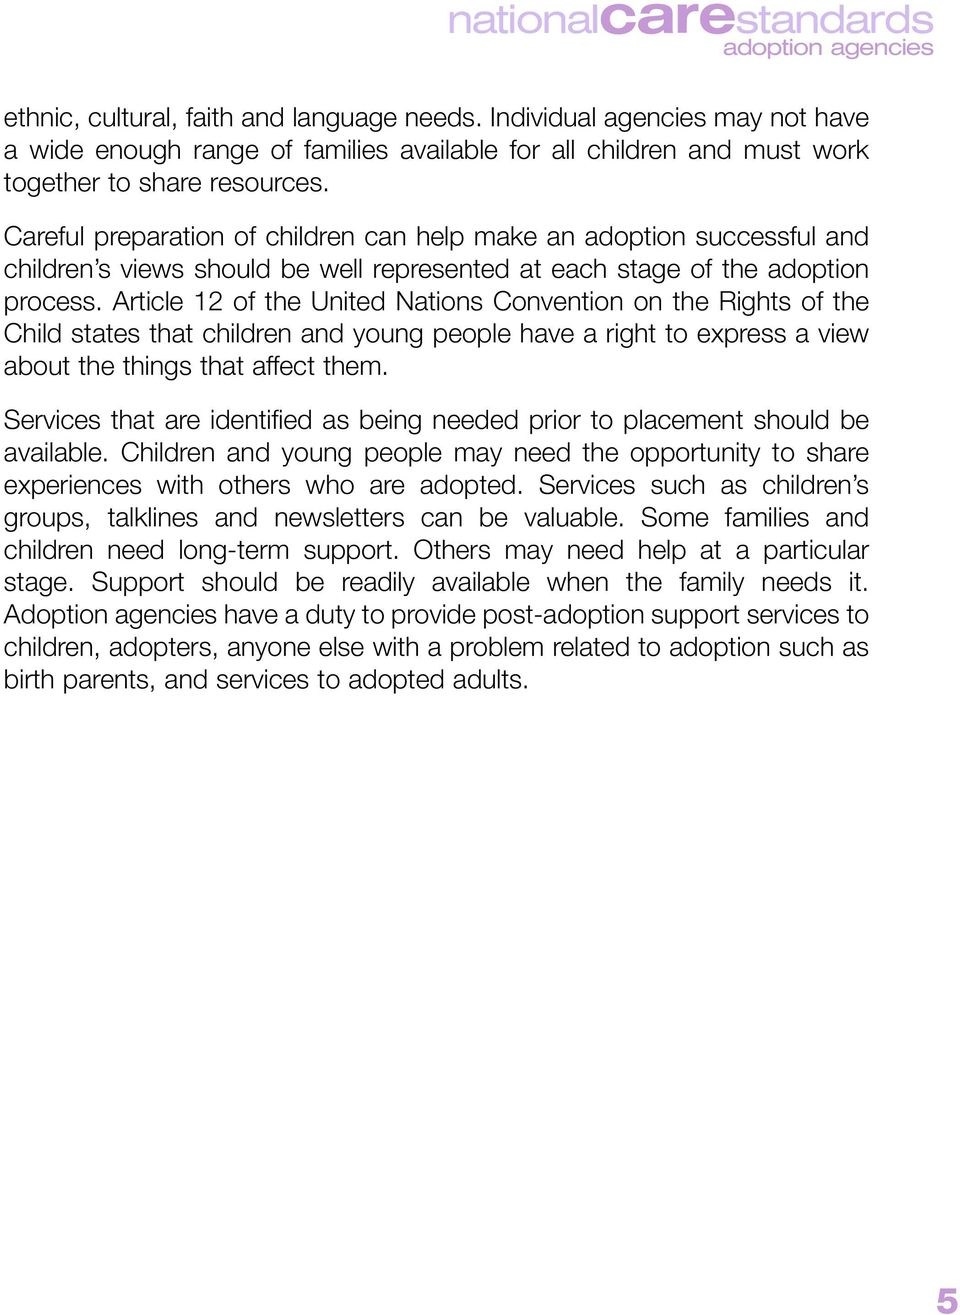 Article 12 of the United Nations Convention on the Rights of the Child states that children and young people have a right to express a view about the things that affect them.